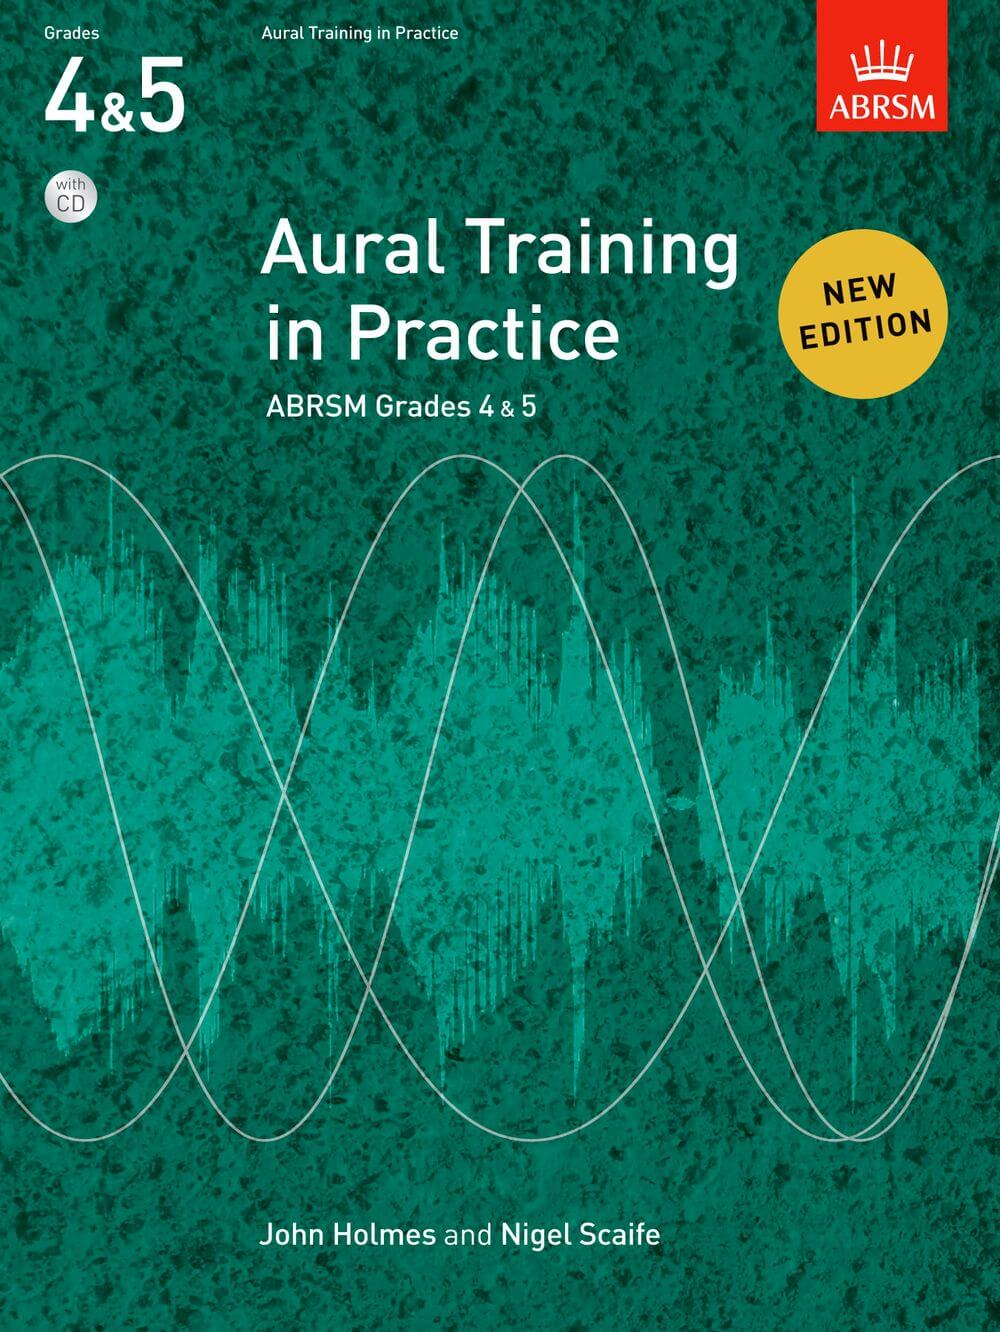 Aural Training in Practice, ABRSM Grades 4 & 5